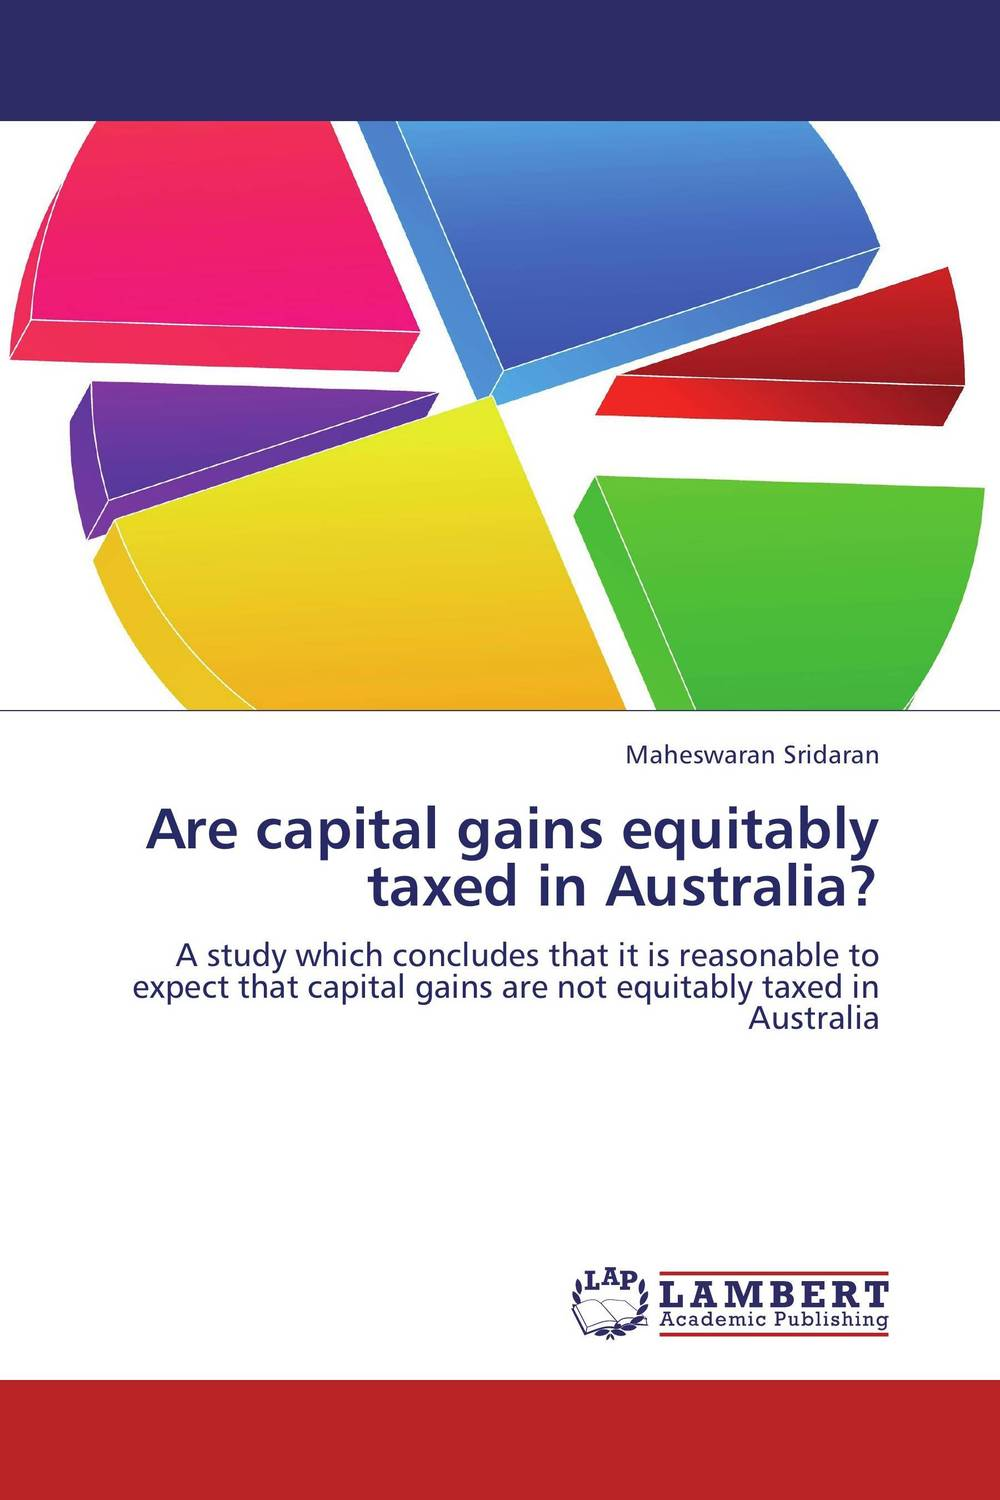 Are capital gains equitably taxed in Australia?